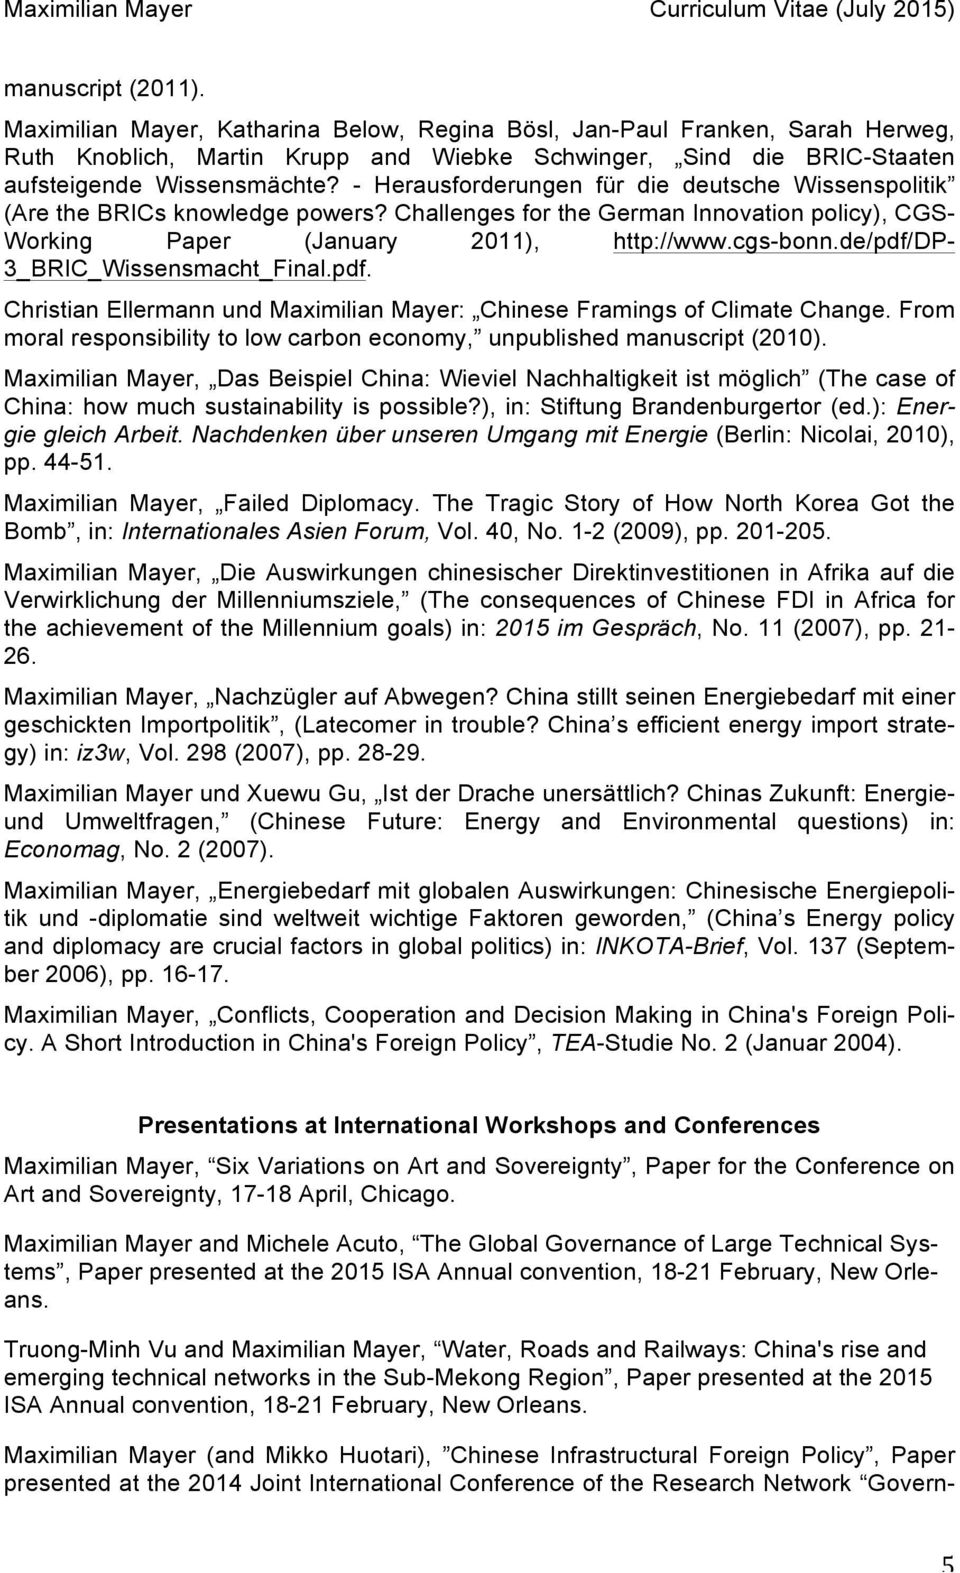 de/pdf/dp- 3_BRIC_Wissensmacht_Final.pdf. Christian Ellermann und Maximilian Mayer: Chinese Framings of Climate Change. From moral responsibility to low carbon economy, unpublished manuscript (2010).